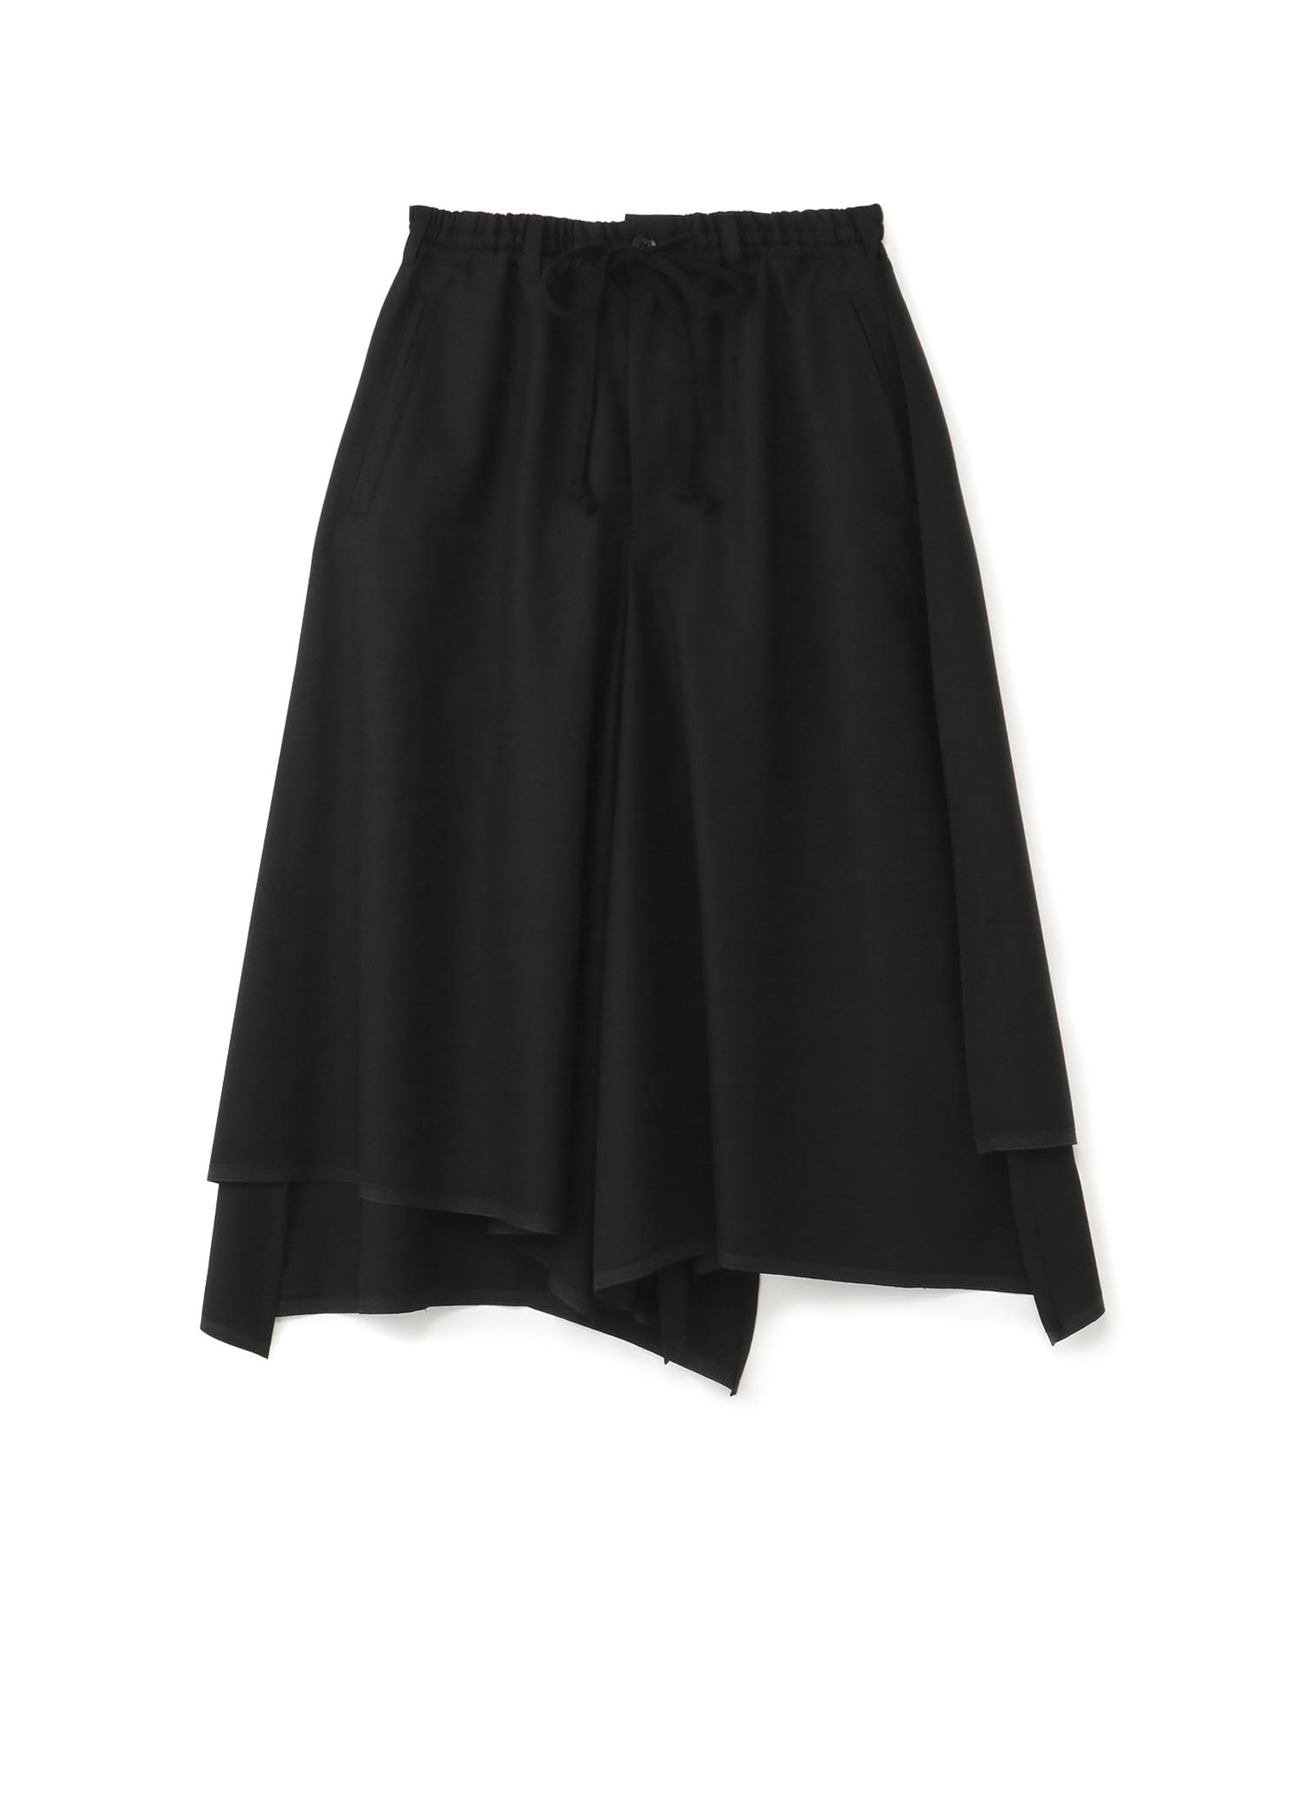 T/W? gaberdine Pants Skirt